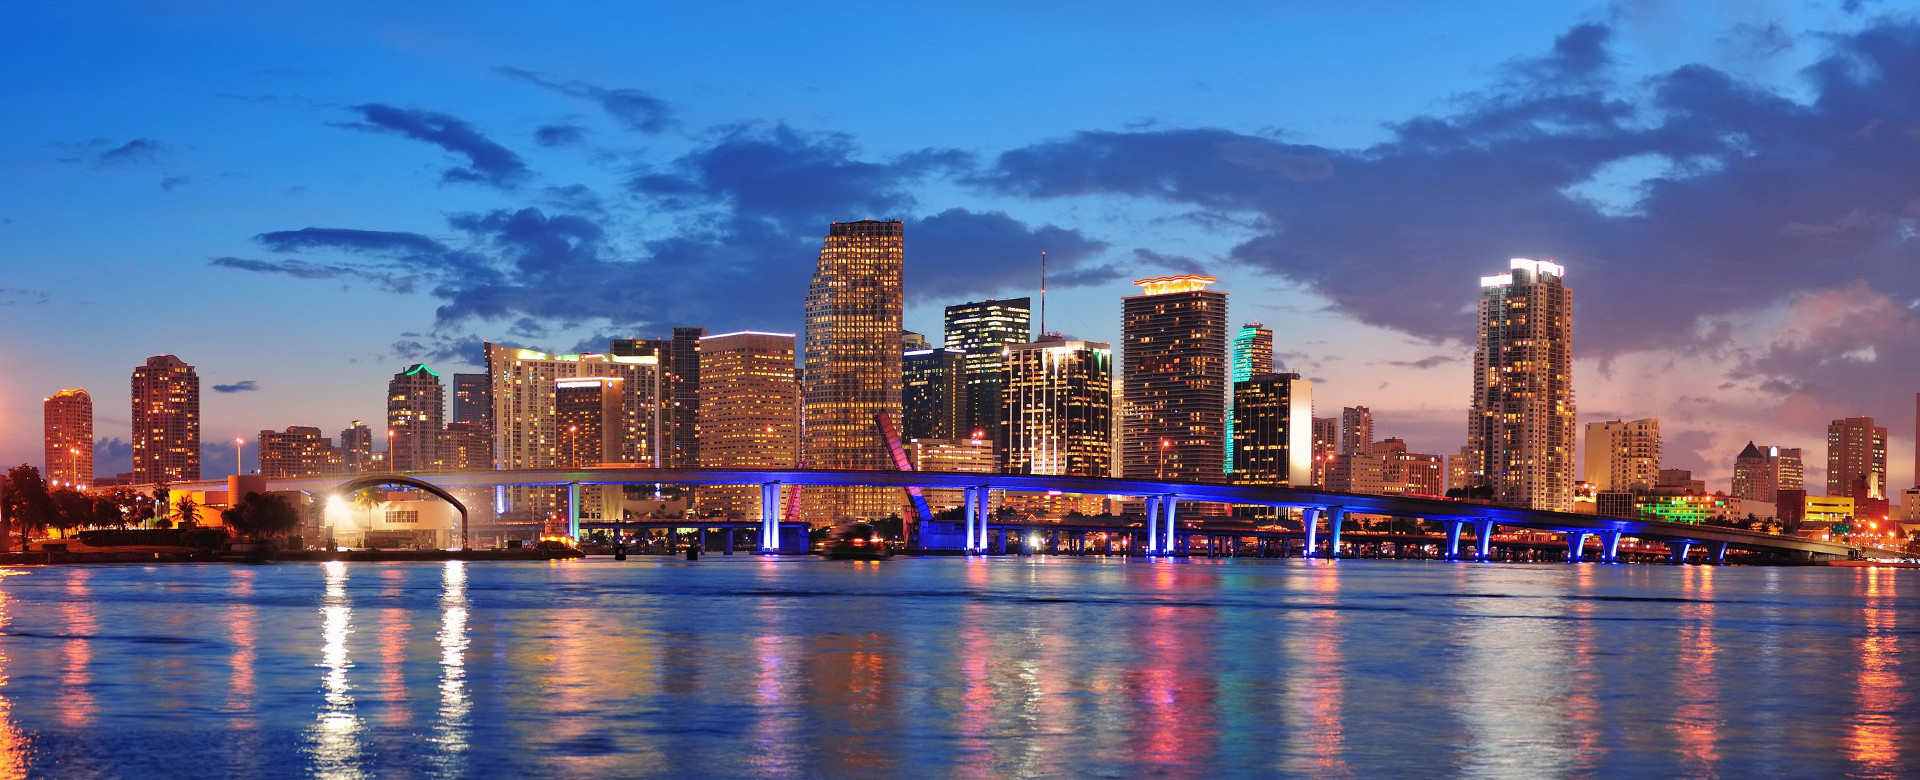 Miami City Skyline by night